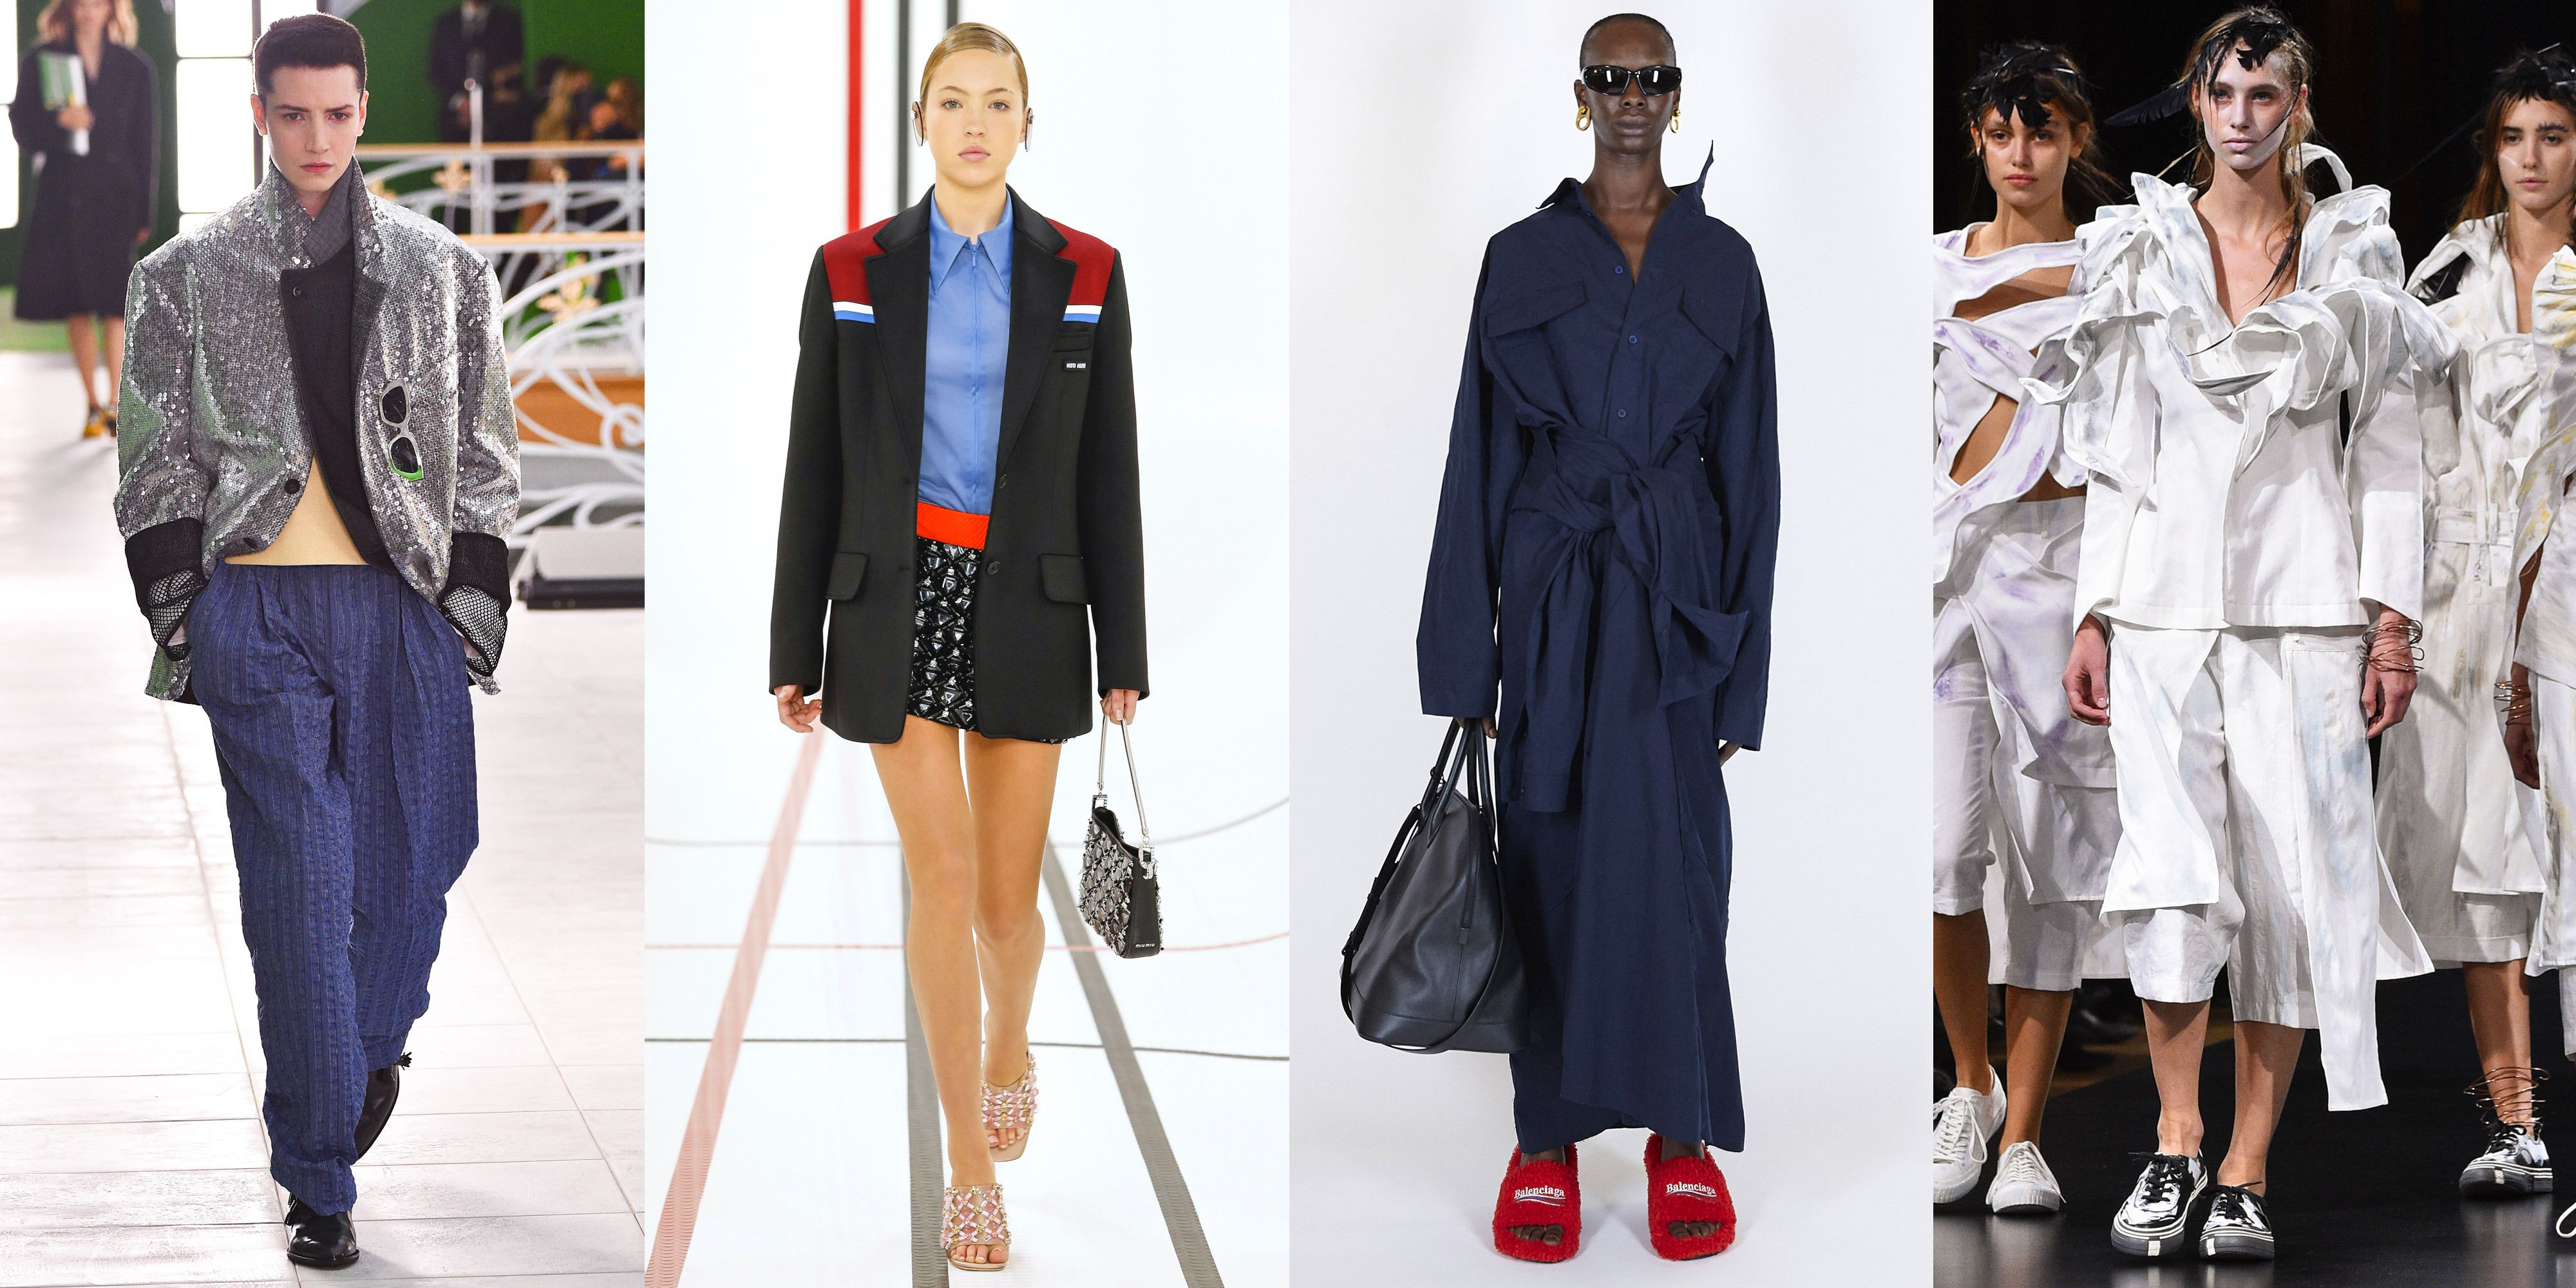 Paris Fashion Week Spring and Summer 8: The Best Looks